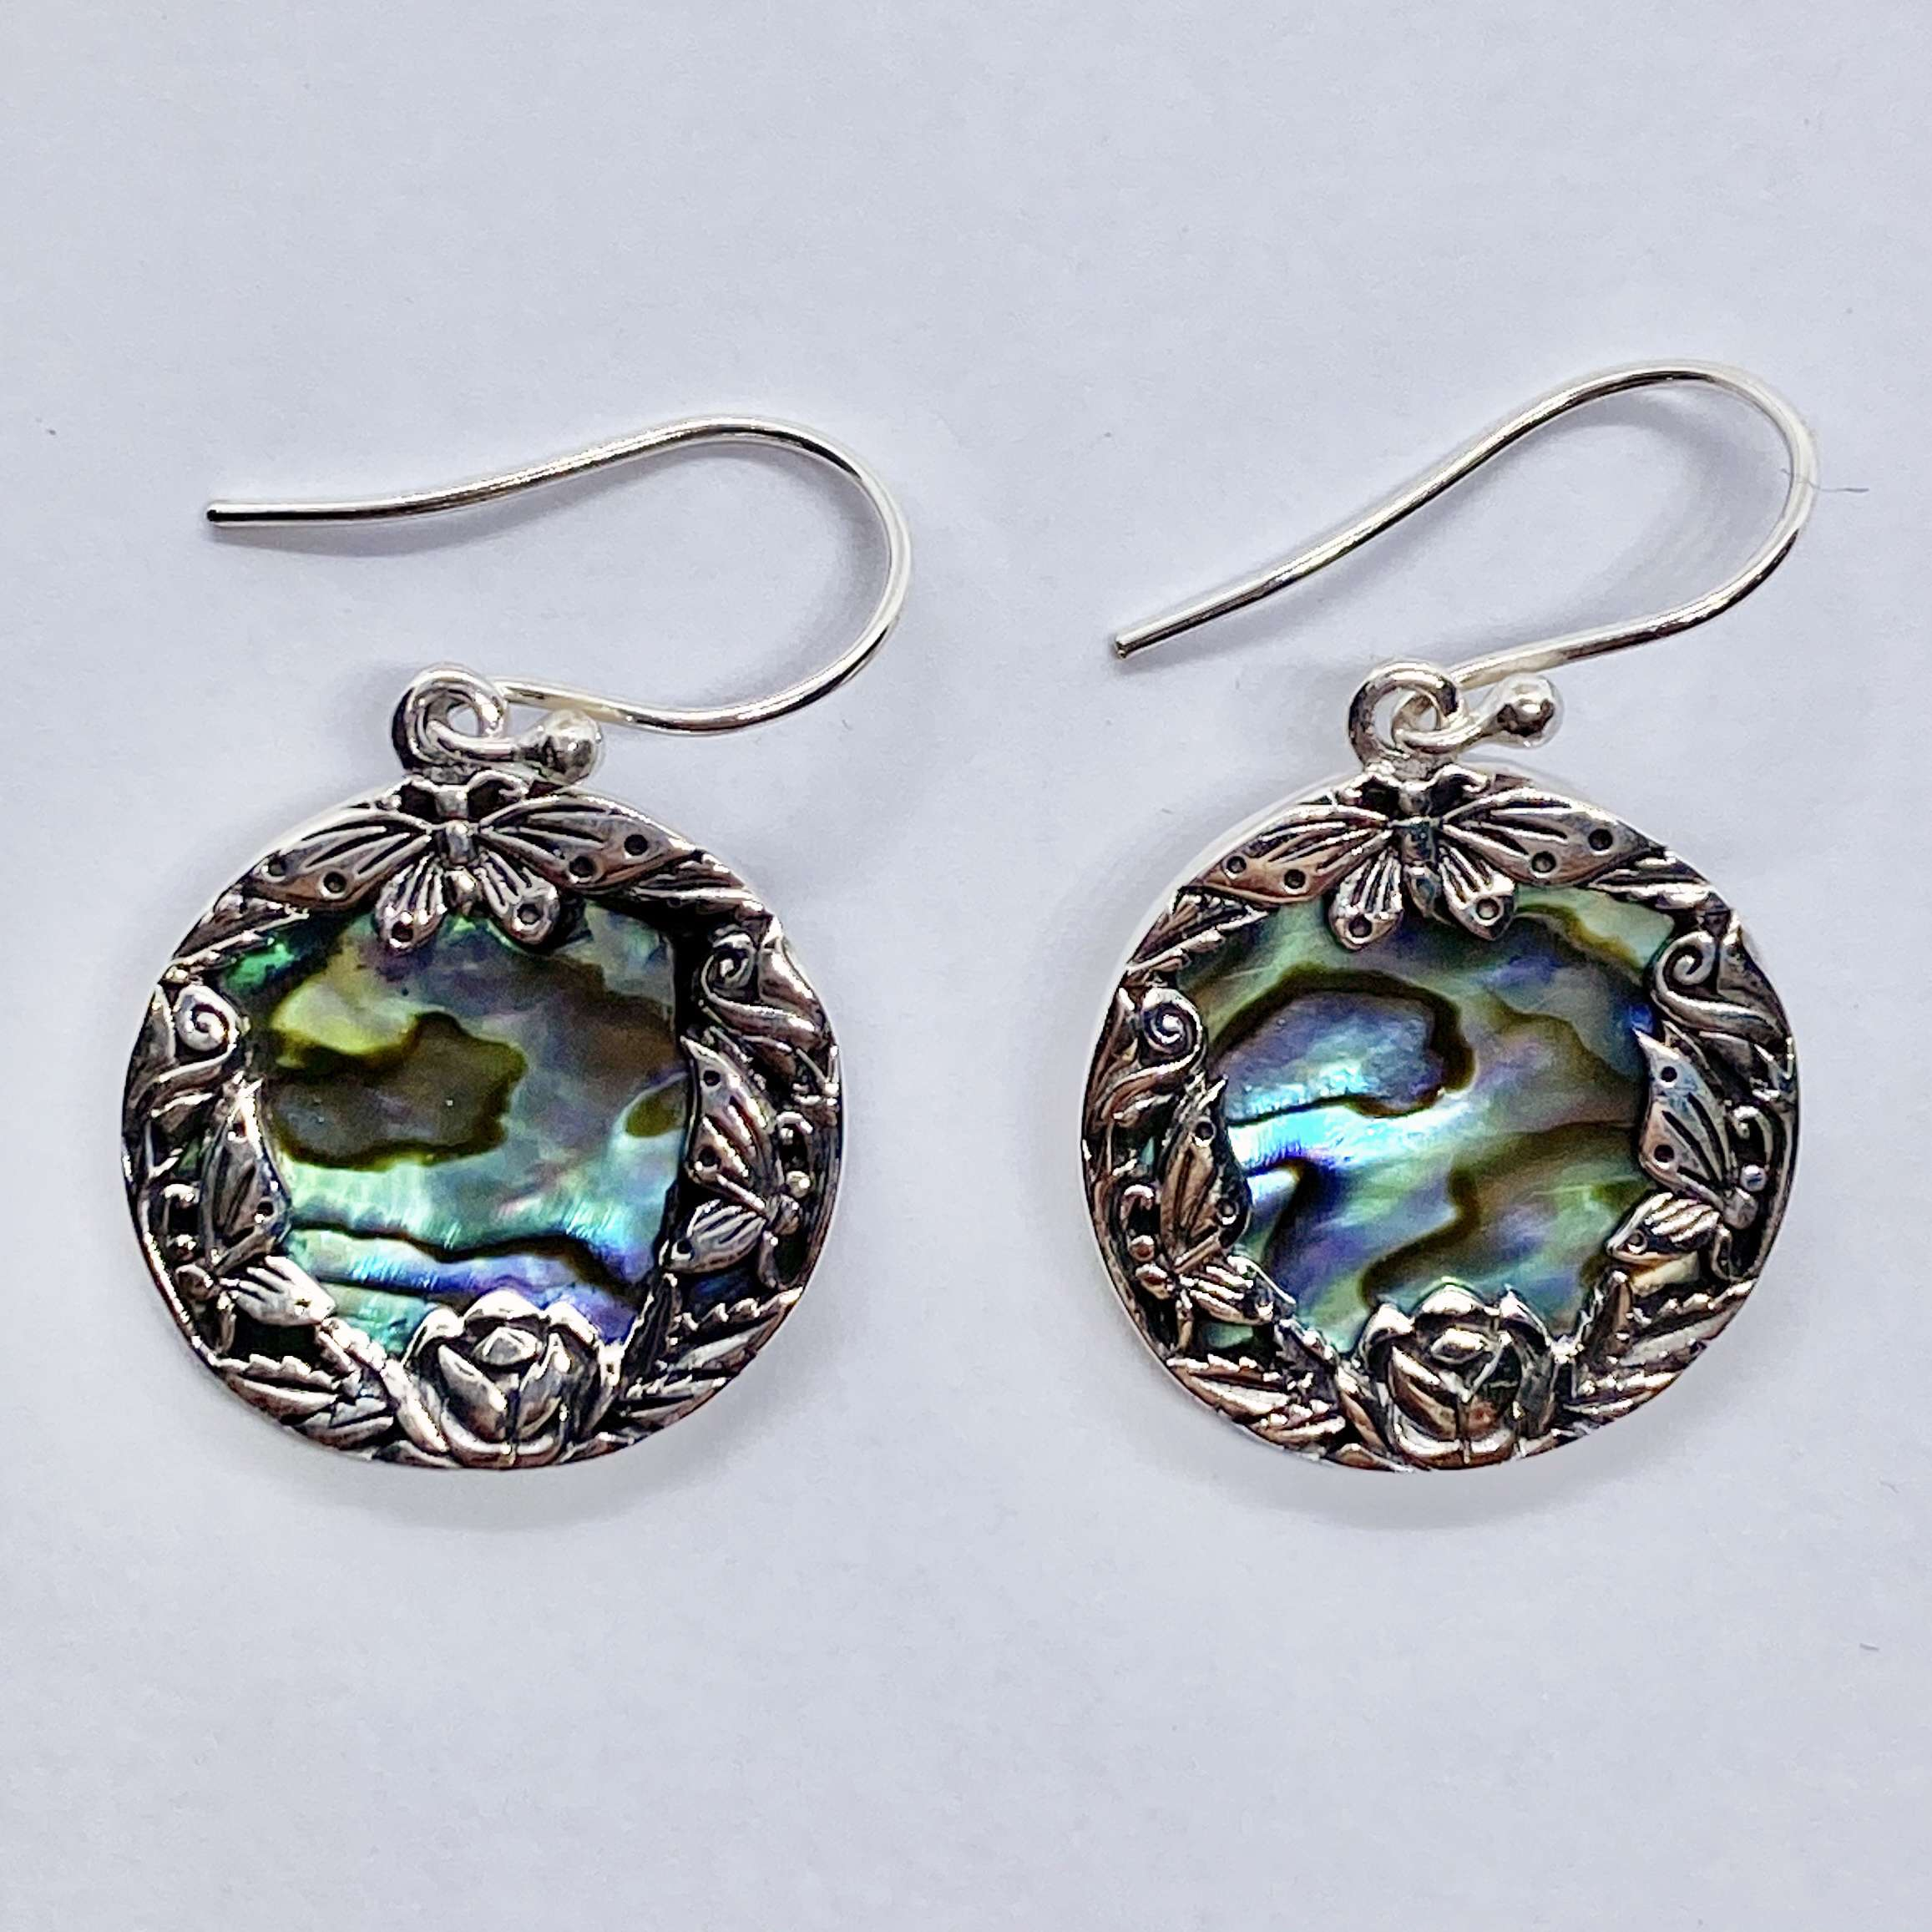 (HANDMADE BALI 925 STERLING SILVER BUTTERFLY EARRINGS WITH ABALONE)